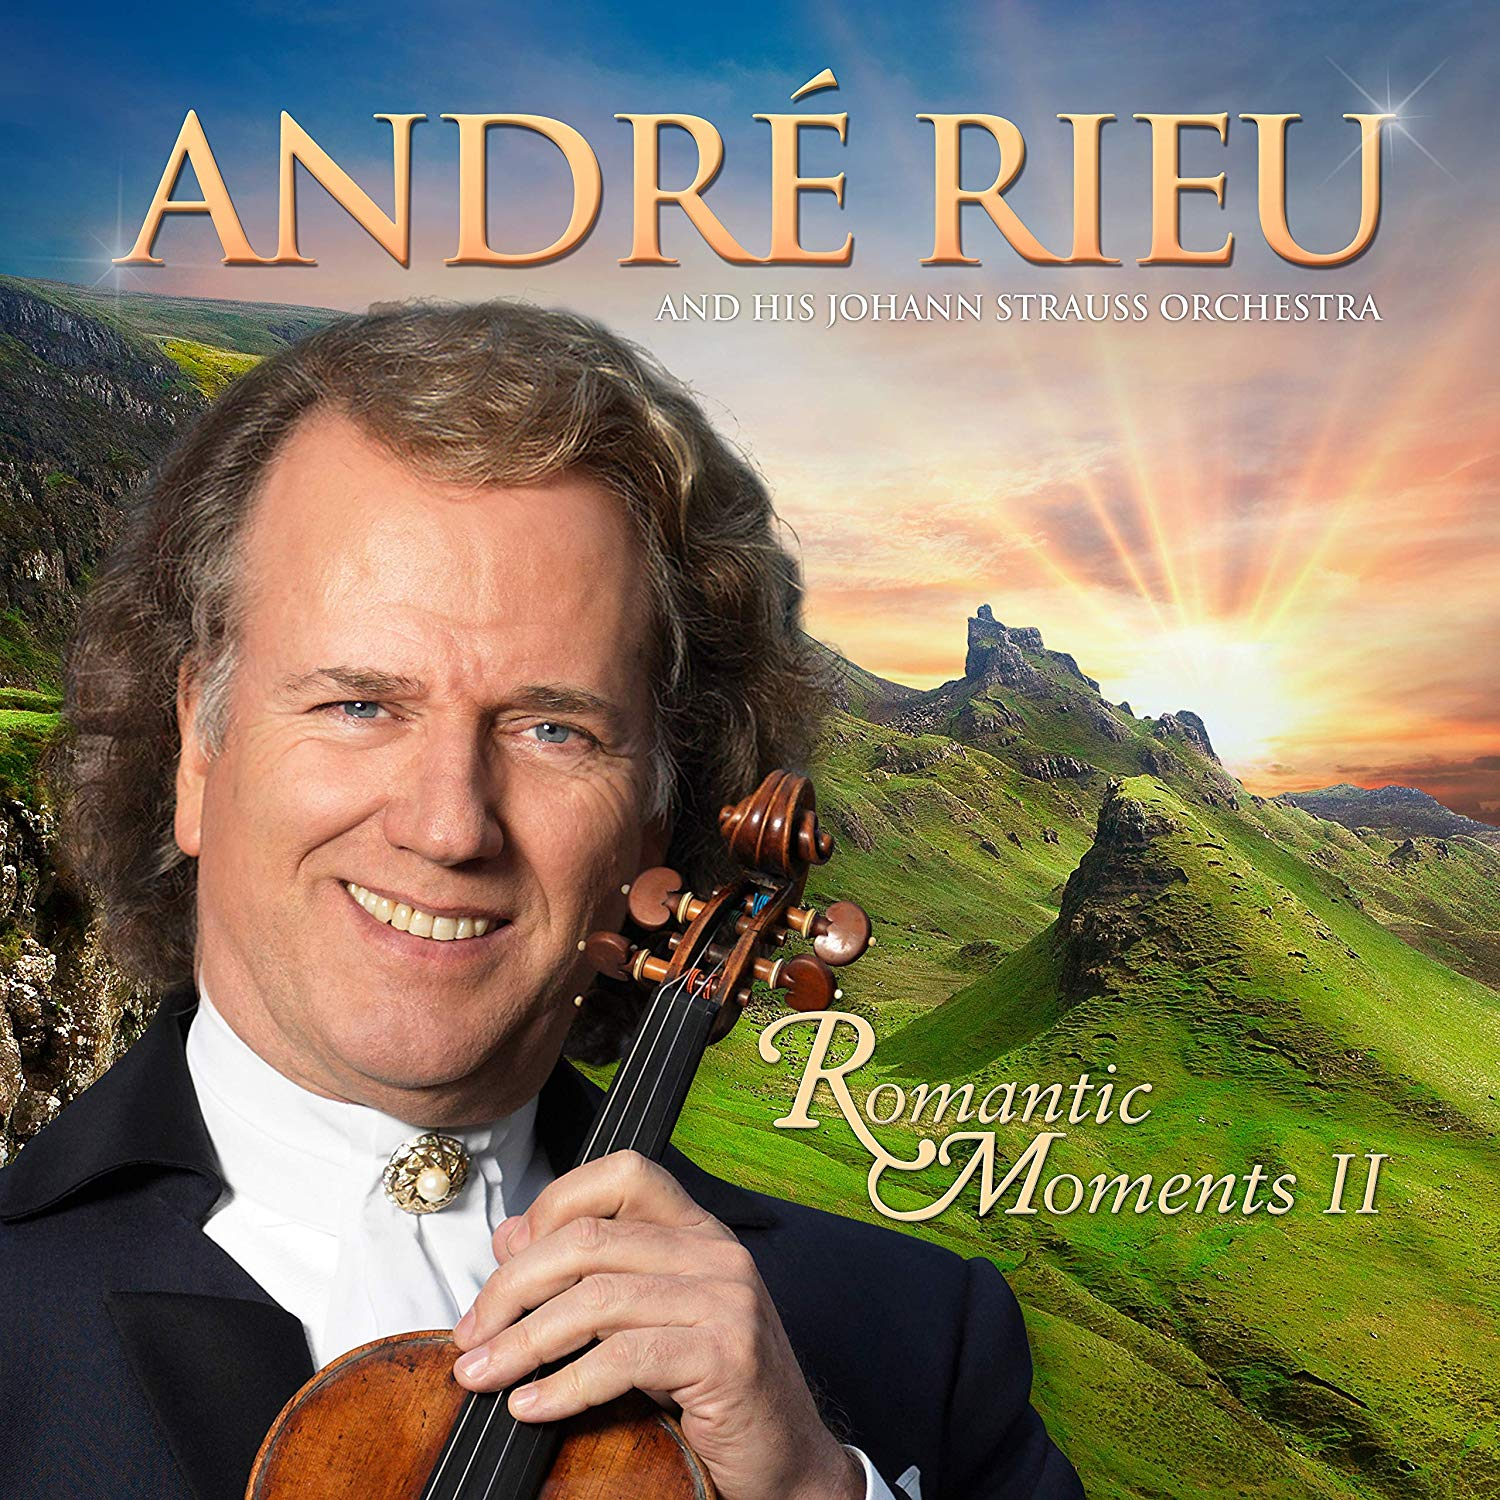 André Rieu: Romantic Moments II - André Rieu [CD] OUT NOW